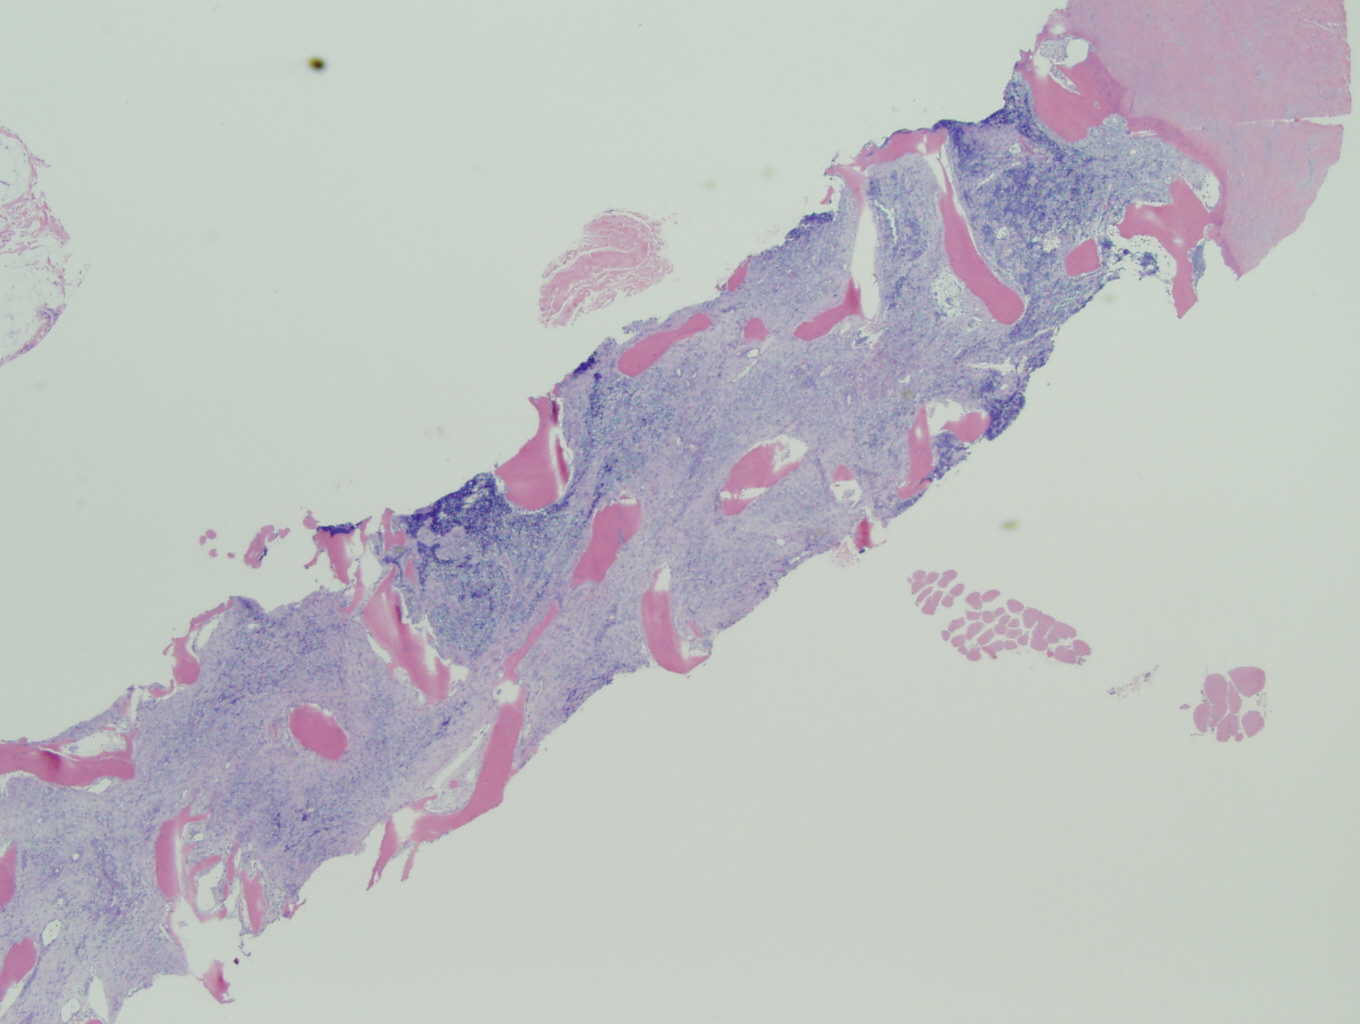 Microscopic image 3 - Biopsy from bone marrow, 2x (Click to enlarge)